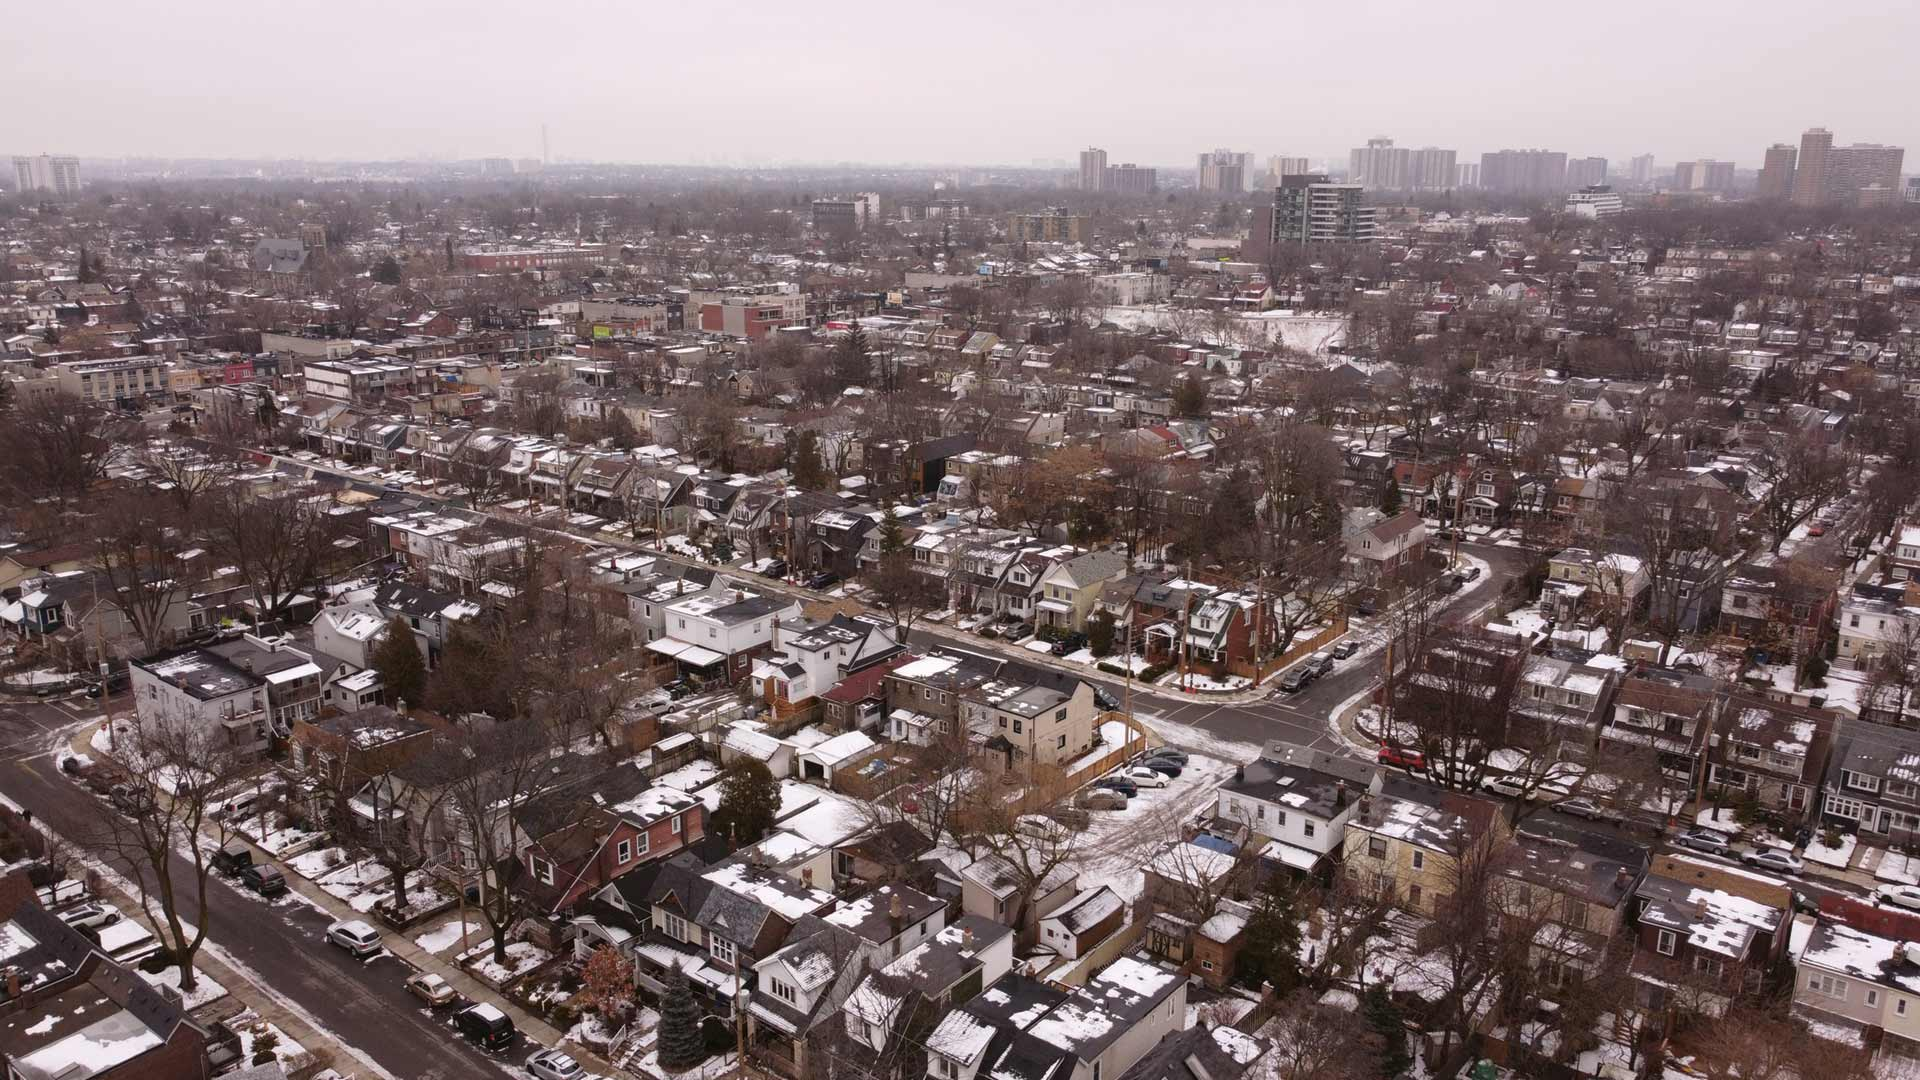 Overhead view of a Canadian suburb in winter.